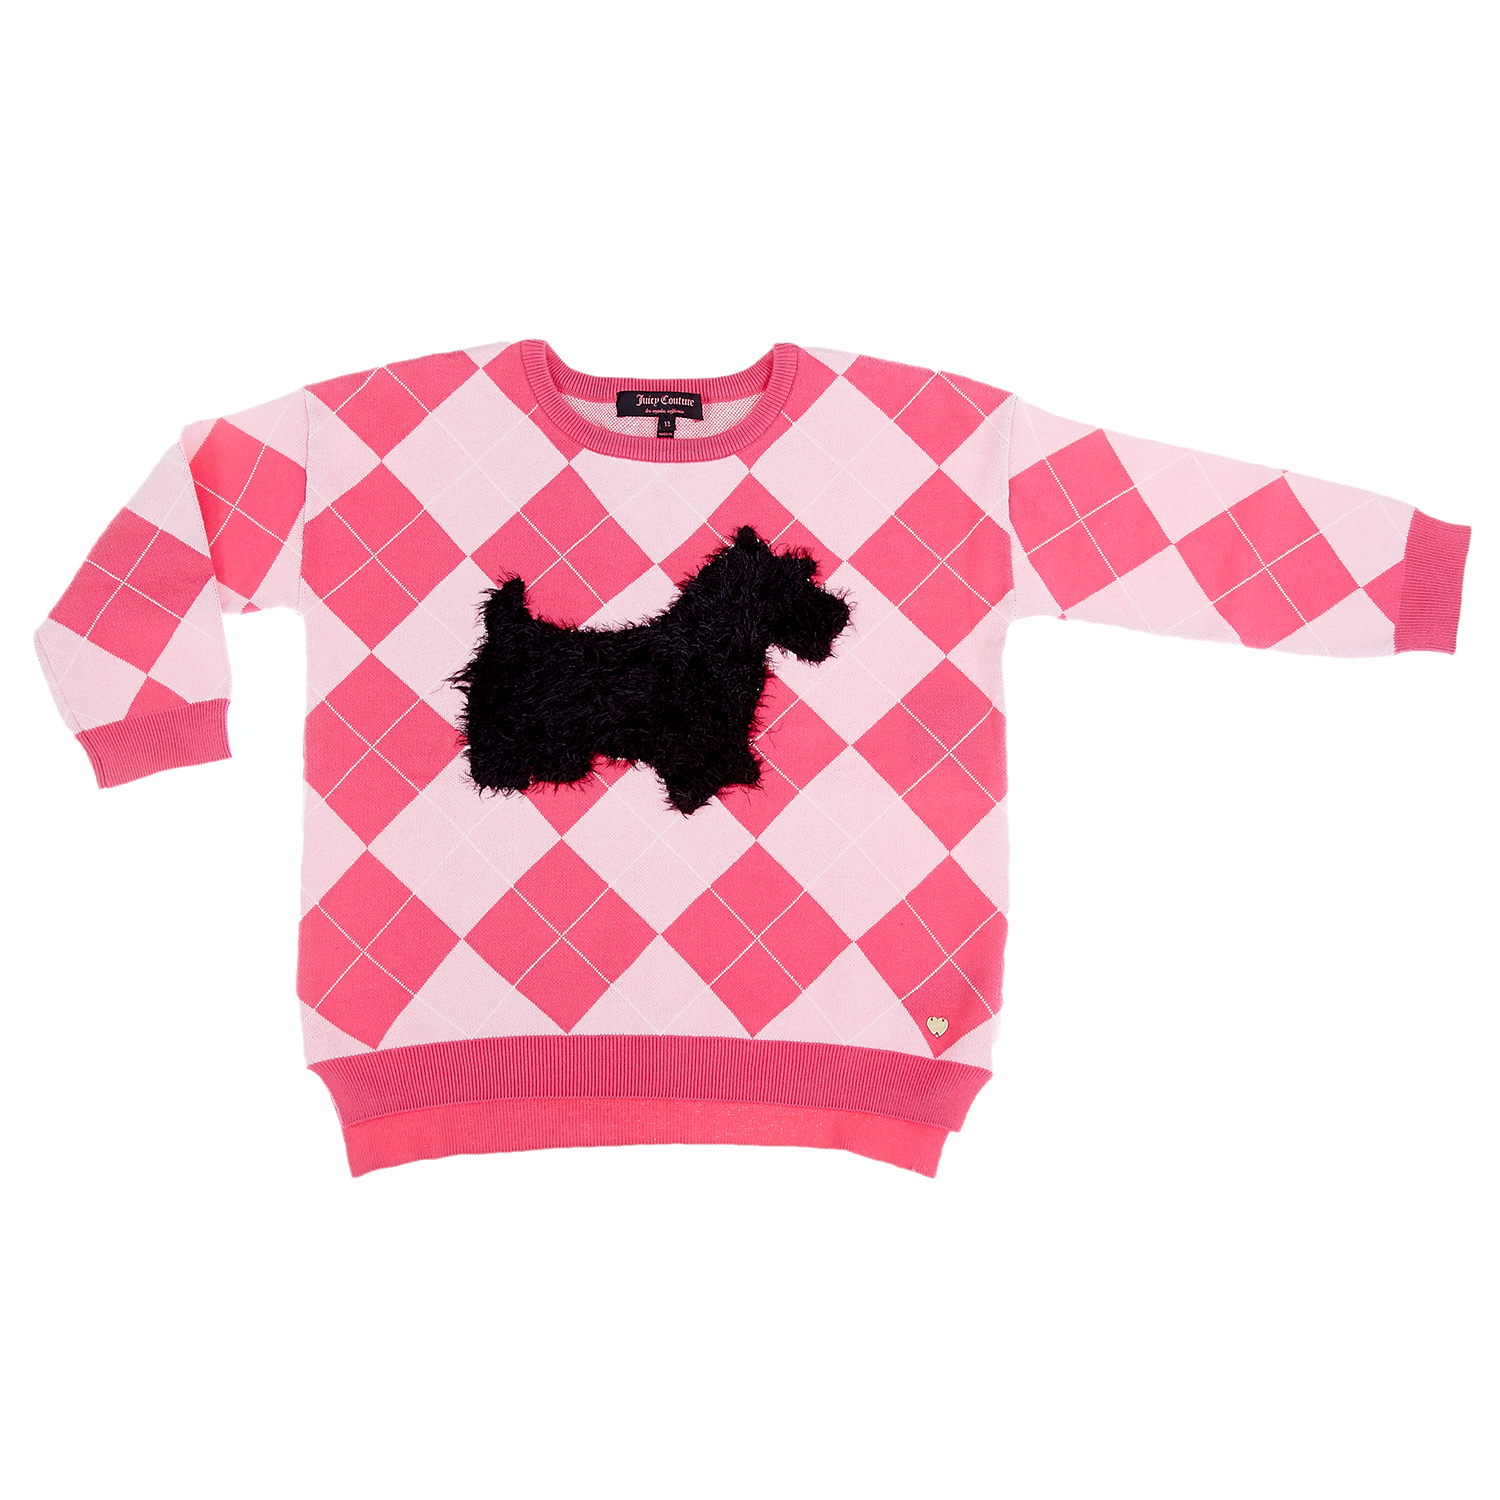 JUICY COUTURE KIDS - Παιδικό πουλόβερ Juicy Couture ροζ